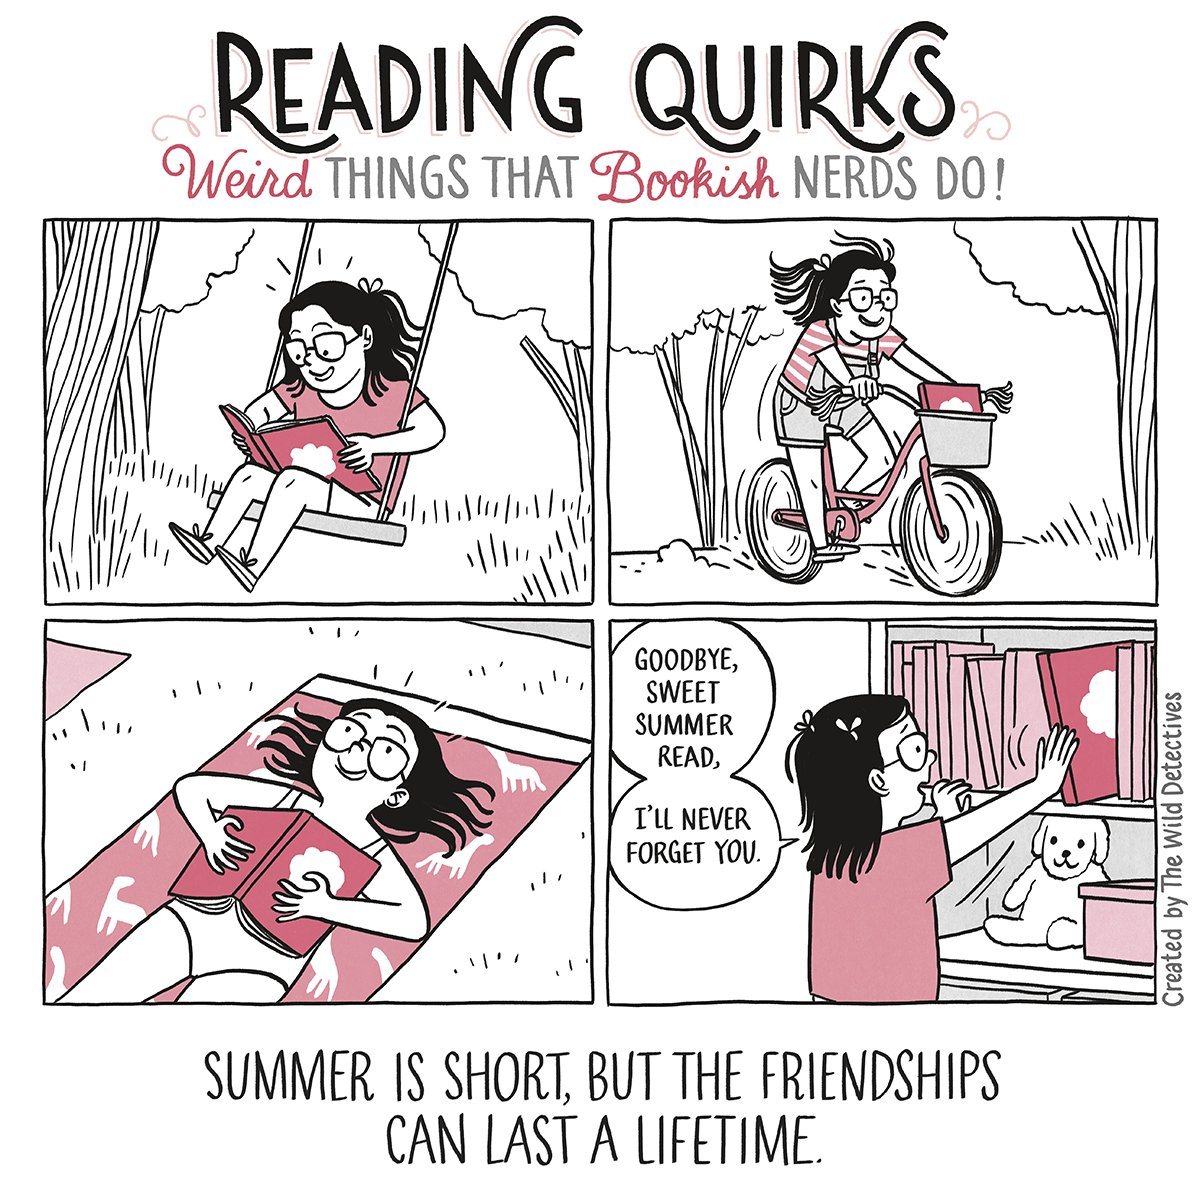 Reading Quirks #51